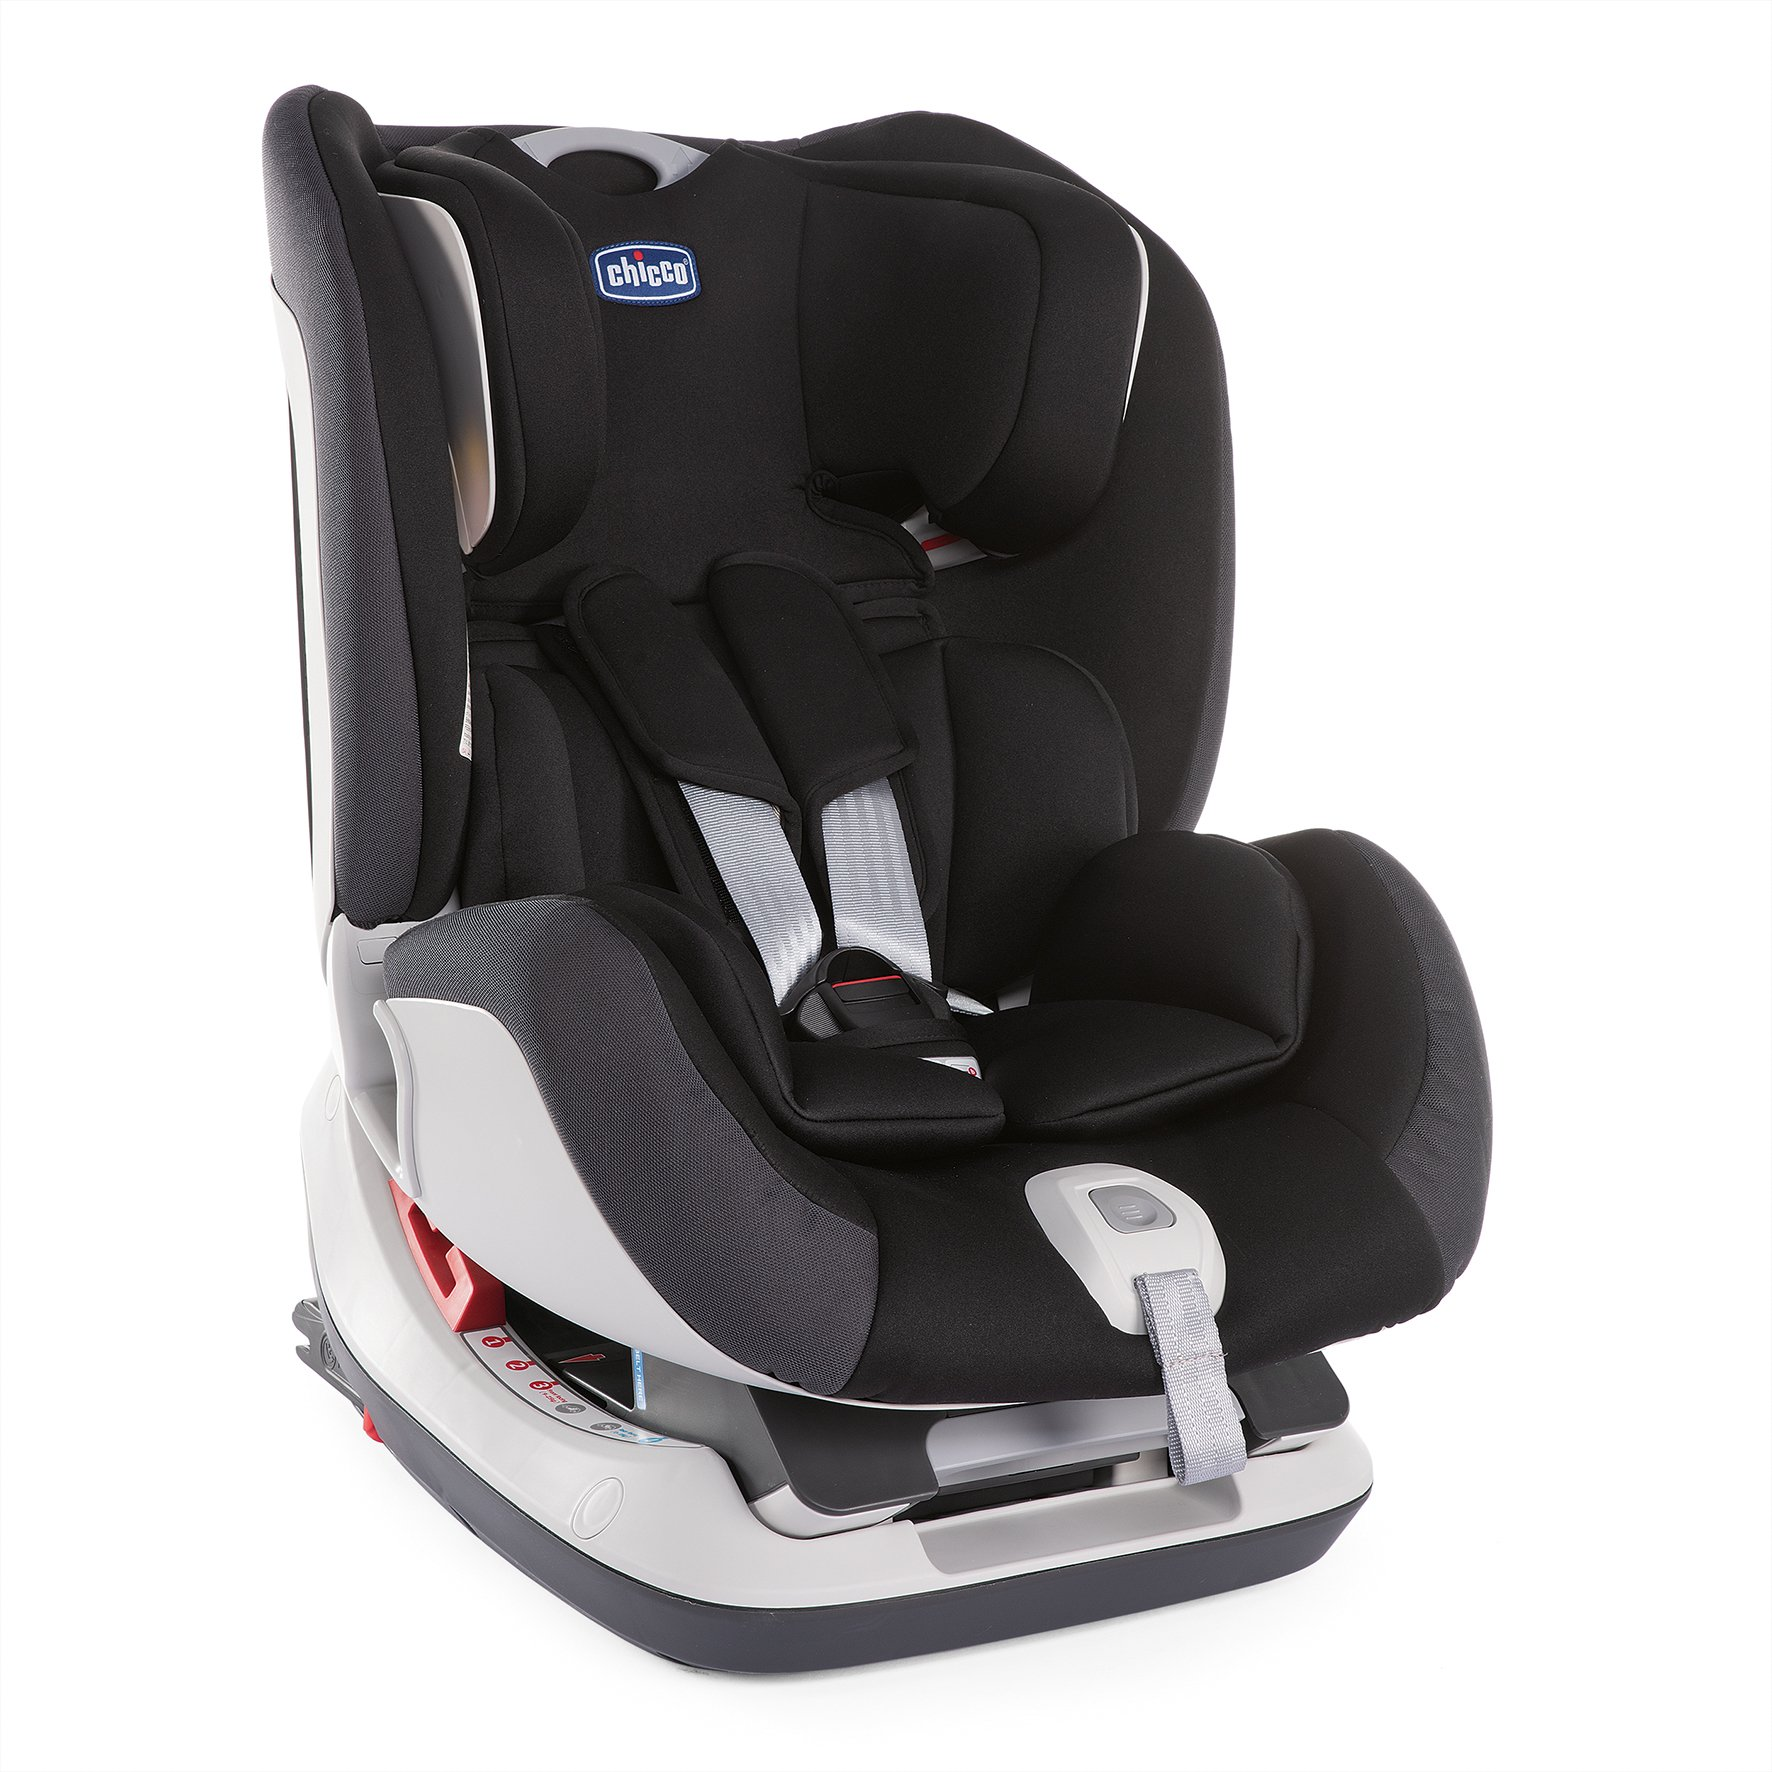 Chicco Child Car Seat Seat up 012 2020